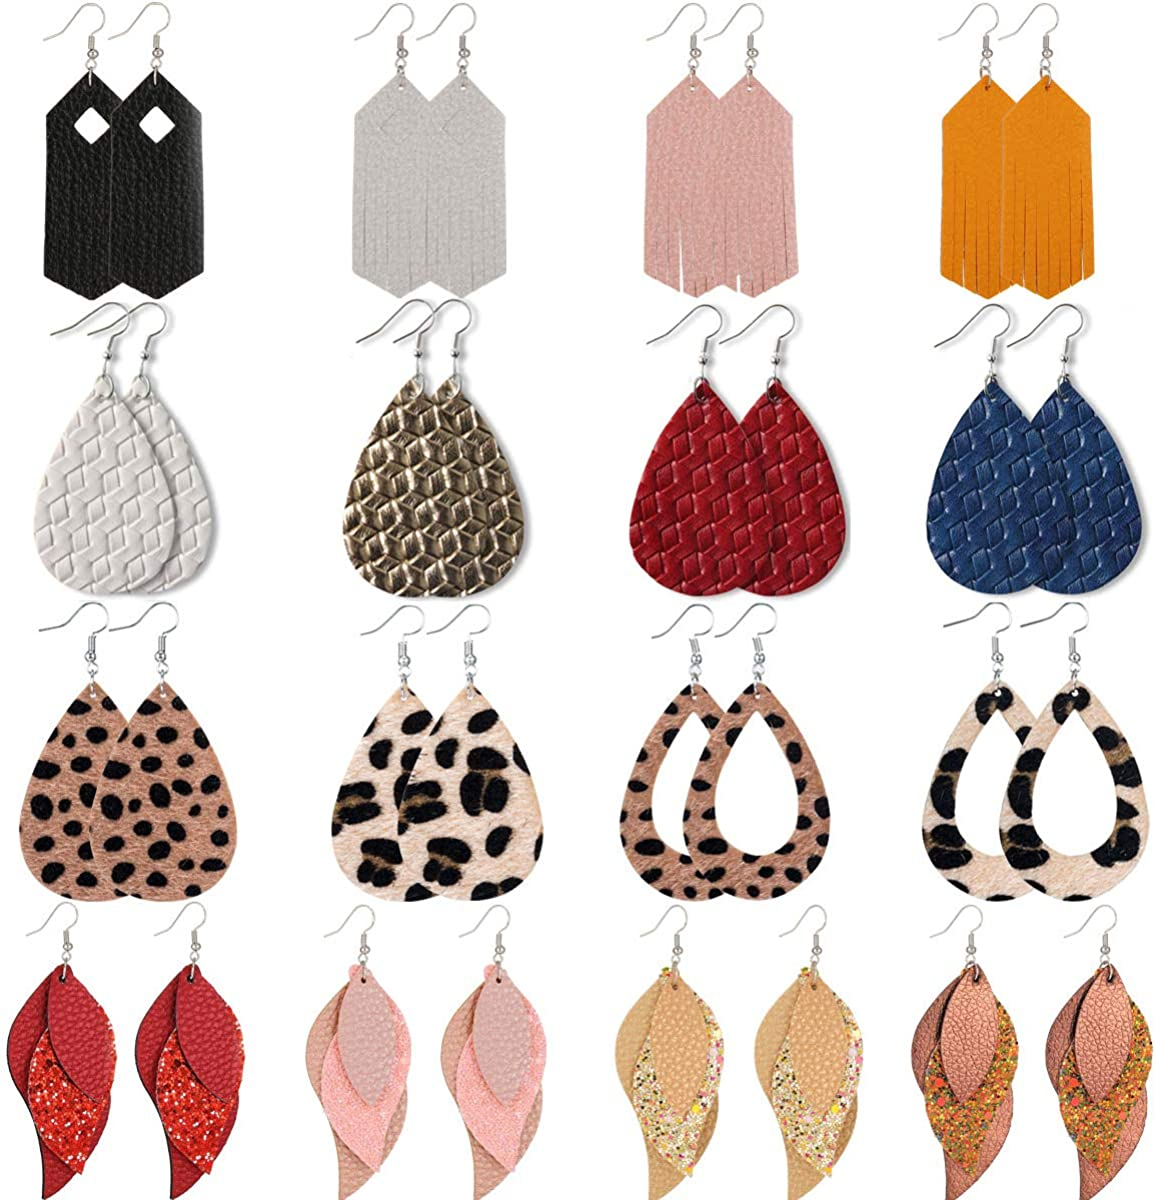 XIJIN 16 Pairs Leather Earrings for Women Lightweight Layered Leather Leaf Earrings Teardrop Dangle Leopard Earrings Set